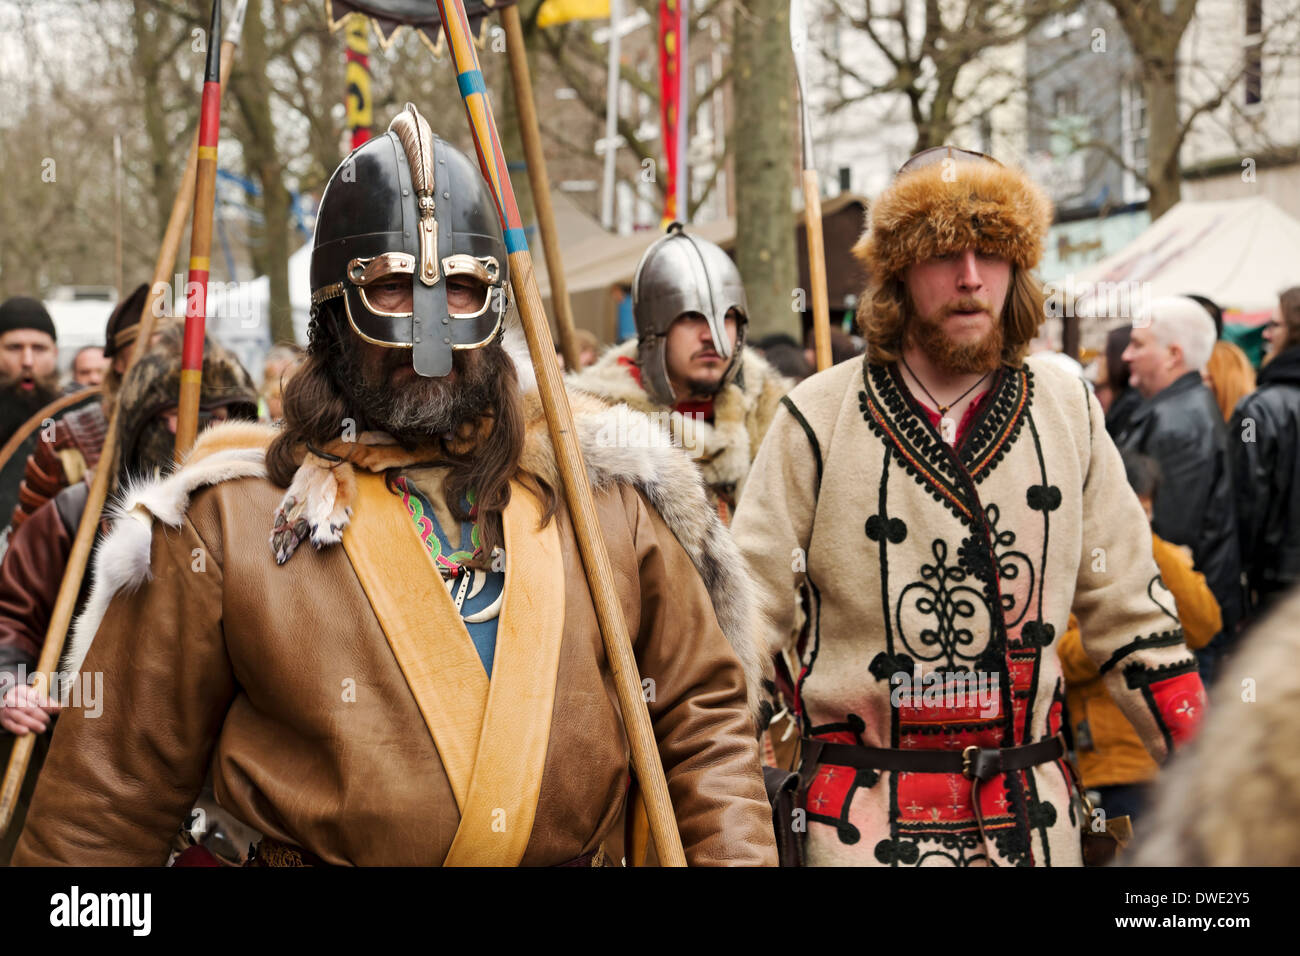 Procession through the streets during the Viking Festival York North Yorkshire England UK United Kingdom GB Great Britain - Stock Image